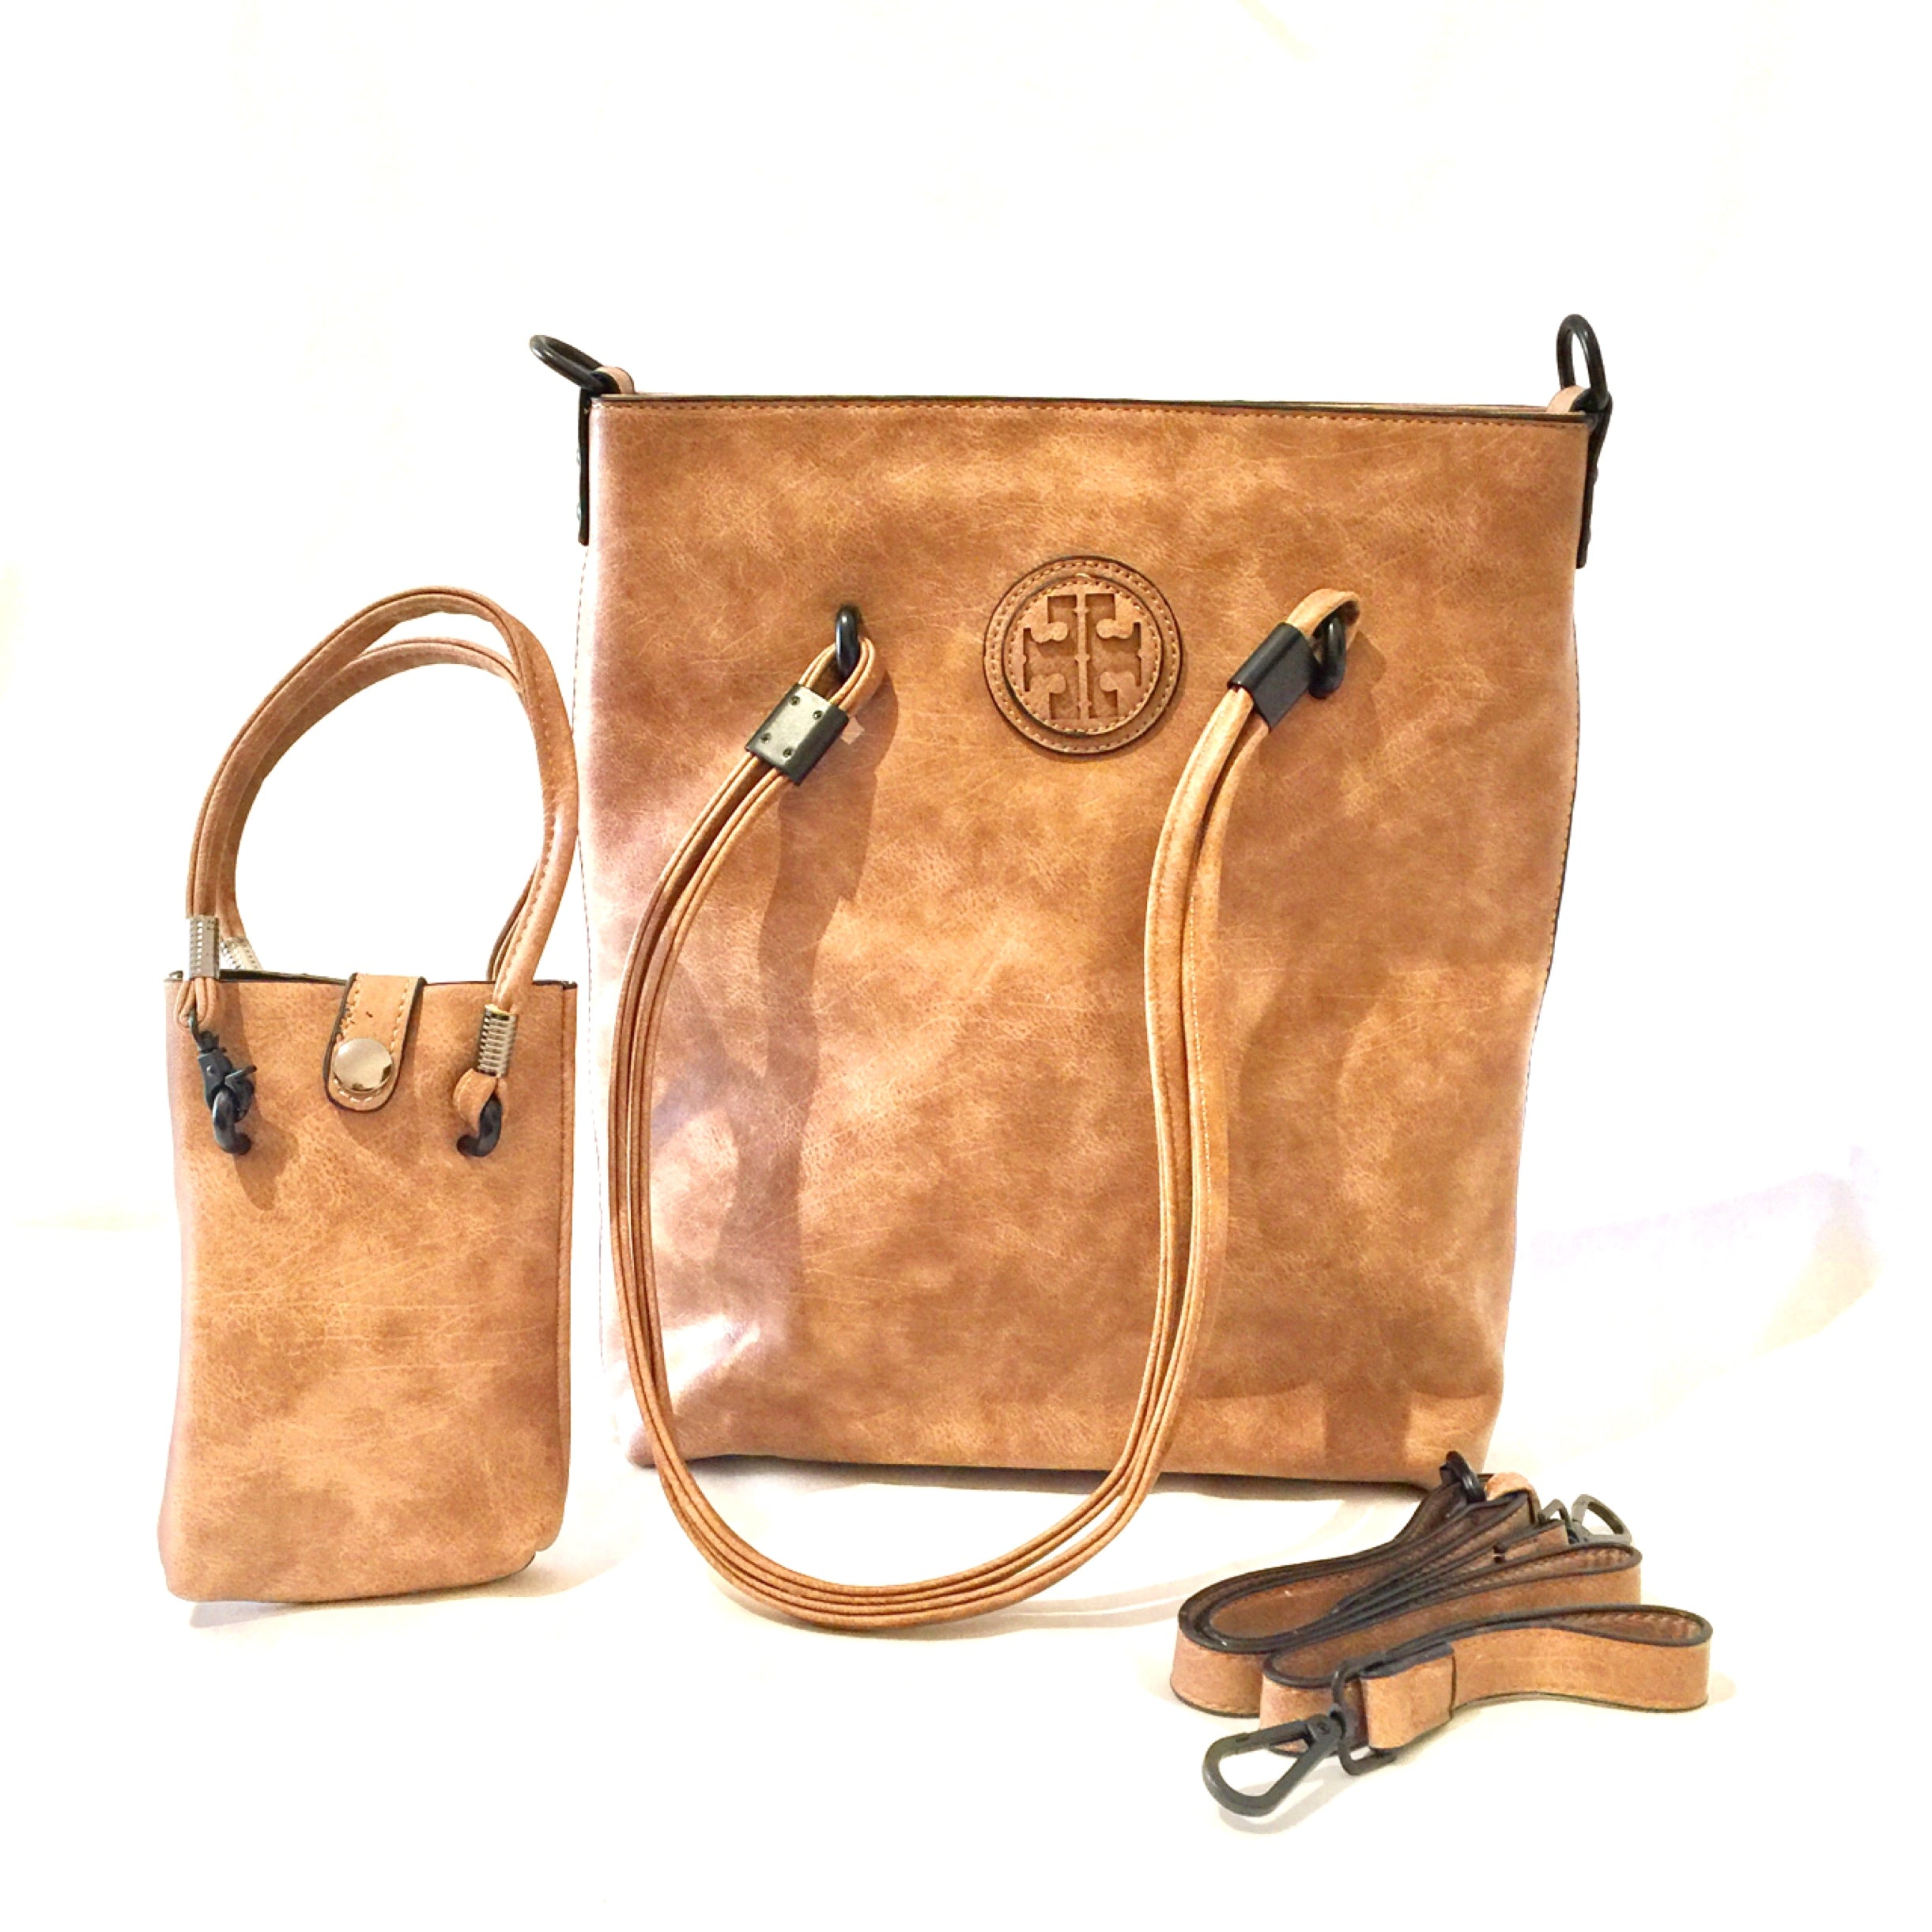 Fleming Swingpack Crossbody - Tory Burch Inspired